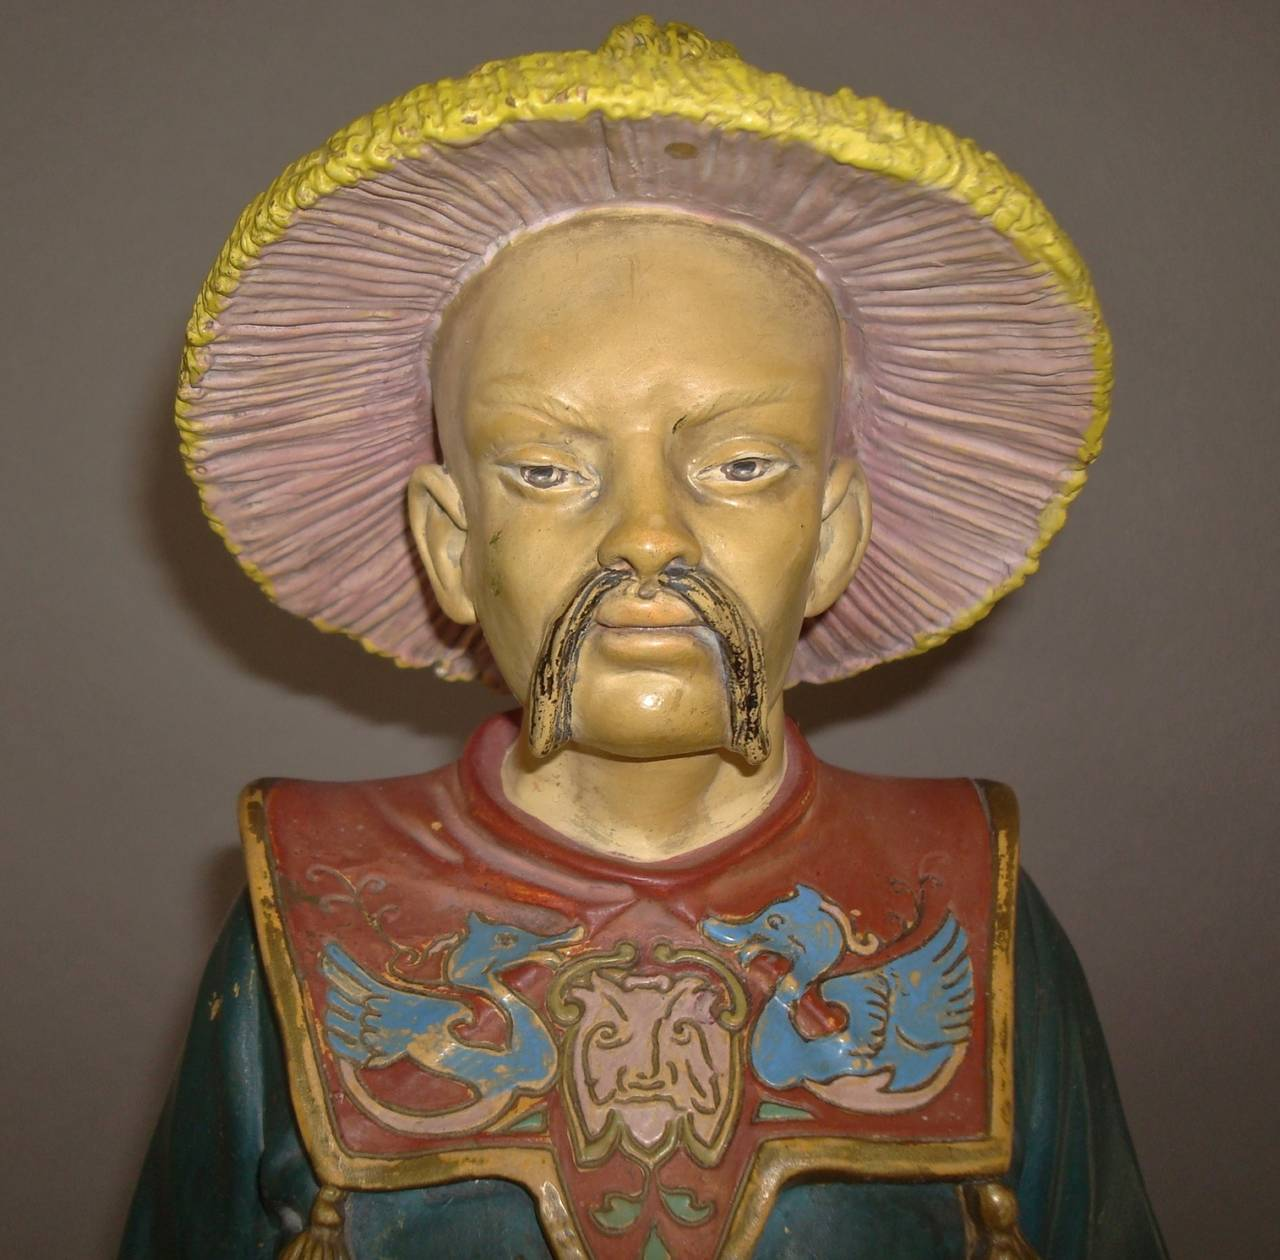 A 19th century decorated terracotta chinaman, retaining its original colourful polychrome decoration; his traditional oriental costume with straw coollie hat and robe finely decorated with butterflies, birds and foliage; carrying two rectangular